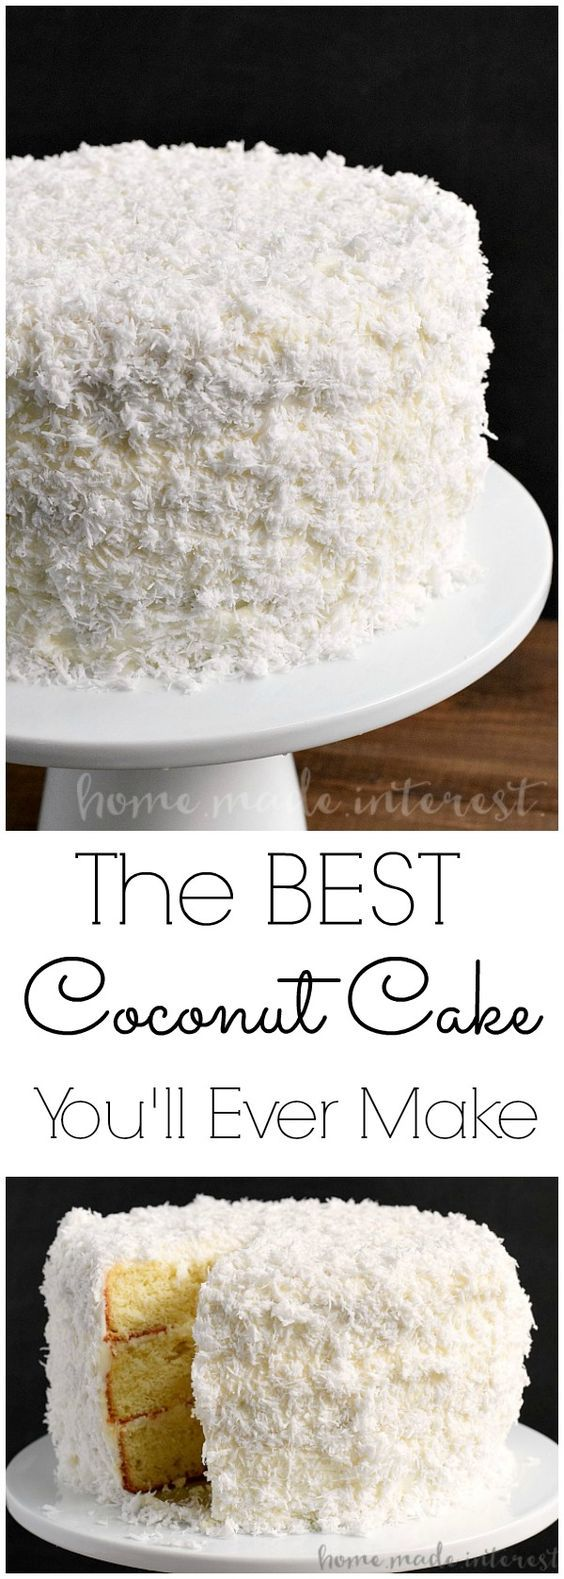 Coconut Cake   This is the best coconut cake recipe I've ever made. This easy coconut cake recipe is moist and delicious and uses fresh coconut! This traditional southern recipe is a delicious coconut cake that makes a perfect Easter dessert, Christmas dessert, or just an amazing cake for a party! This three layer coconut cake is beautiful and delicious!